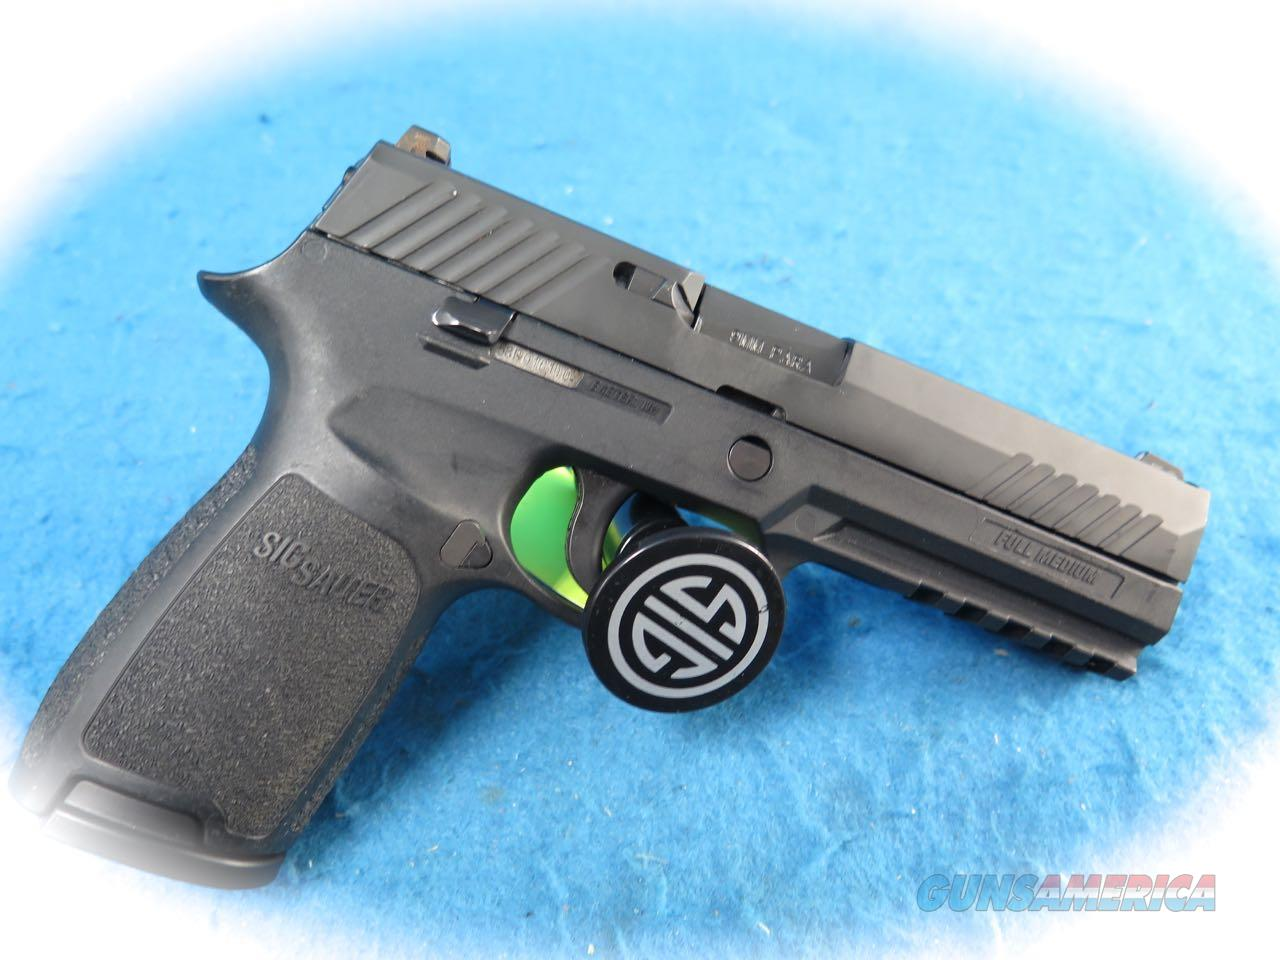 Sig Sauer P320 9mm Pistol **Used**  Guns > Pistols > Sig - Sauer/Sigarms Pistols > P320